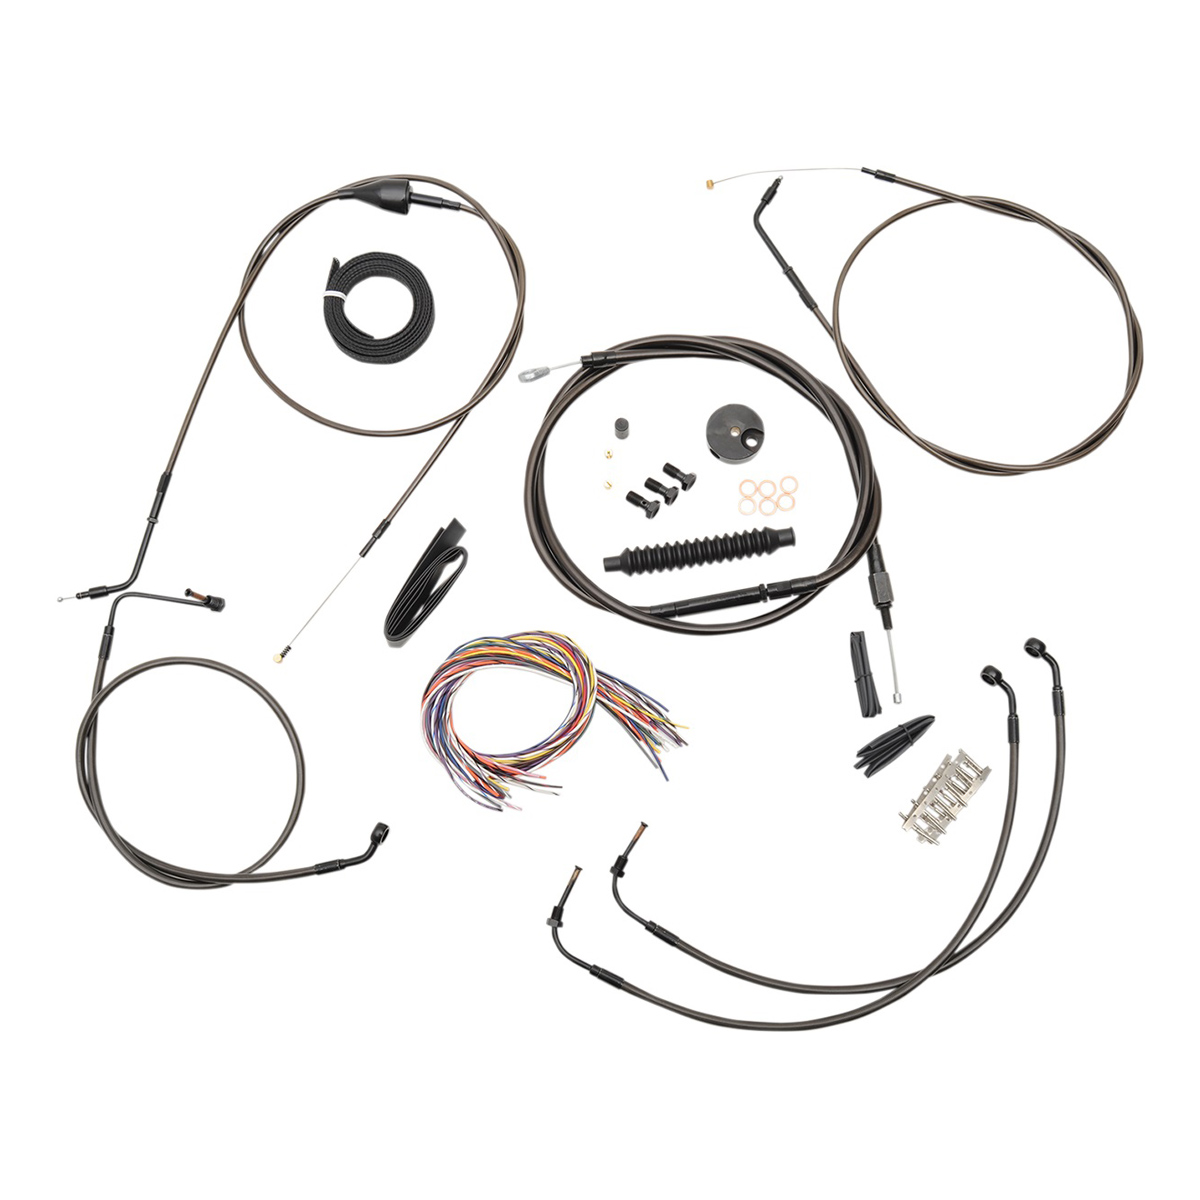 LA Choppers Midnight Complete Cable/Line/Wiring Handlebar Kit for Mini Ape Bars